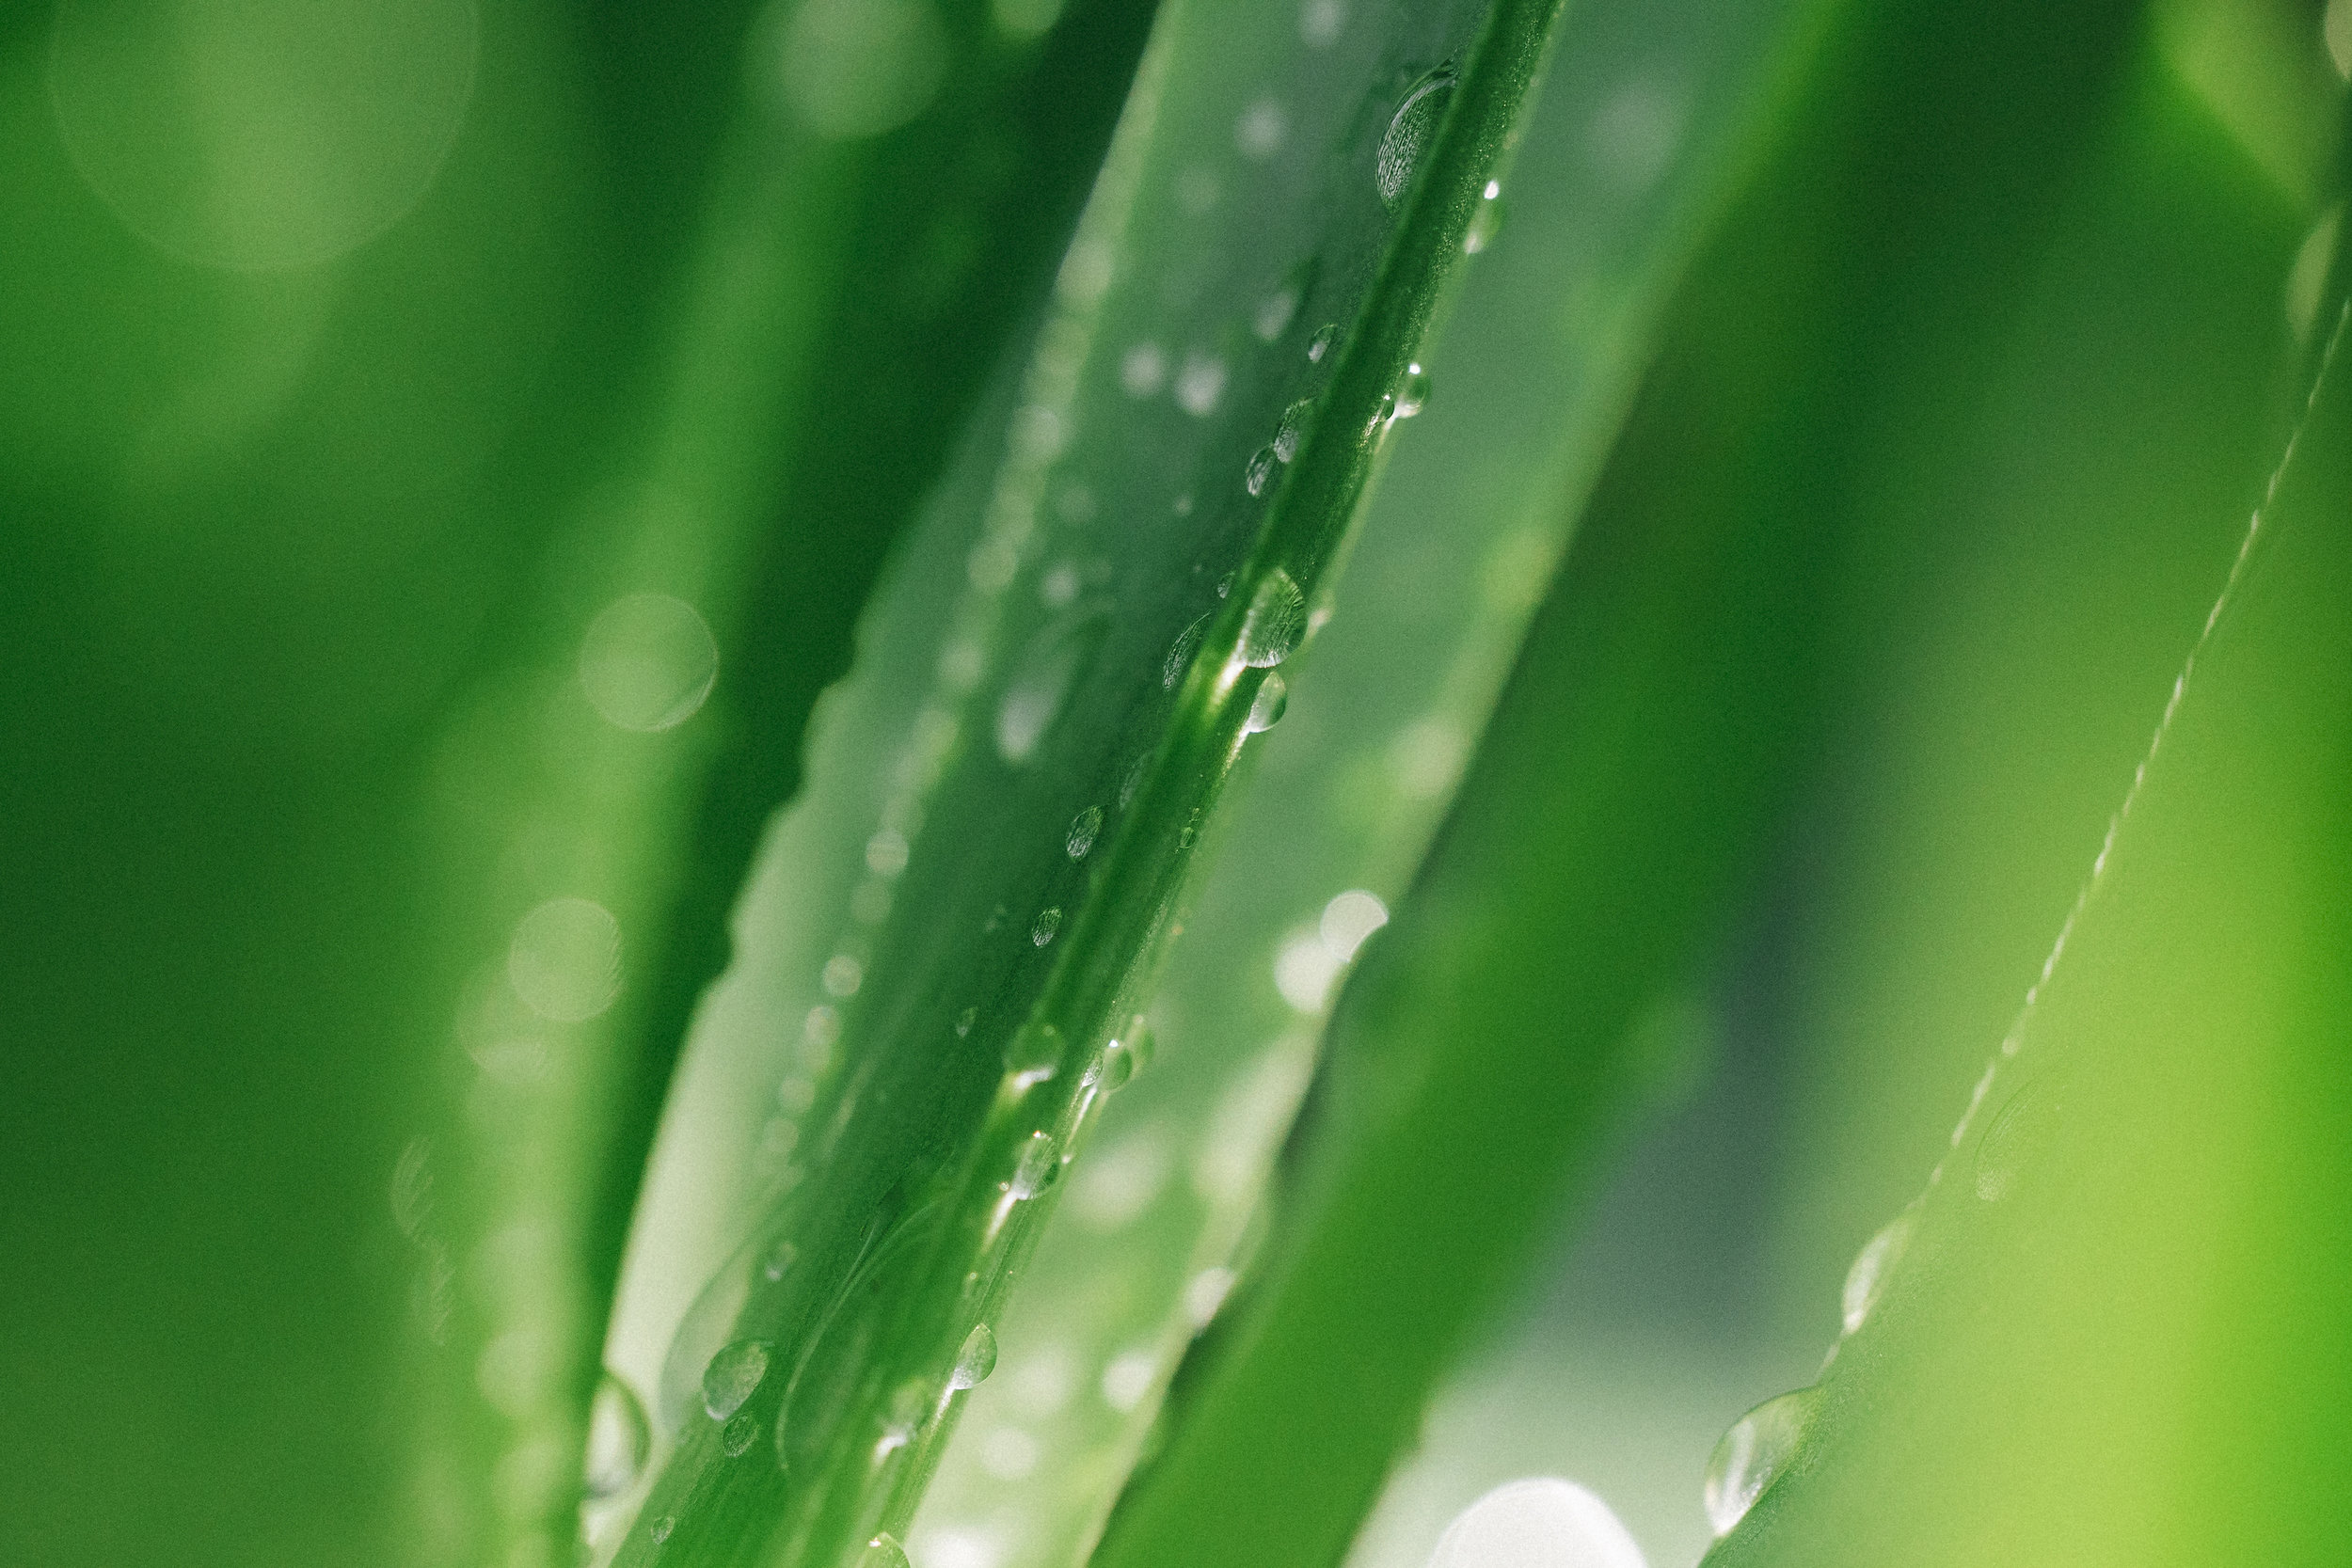 Dew on Aloe Vera - California, USA - 2018